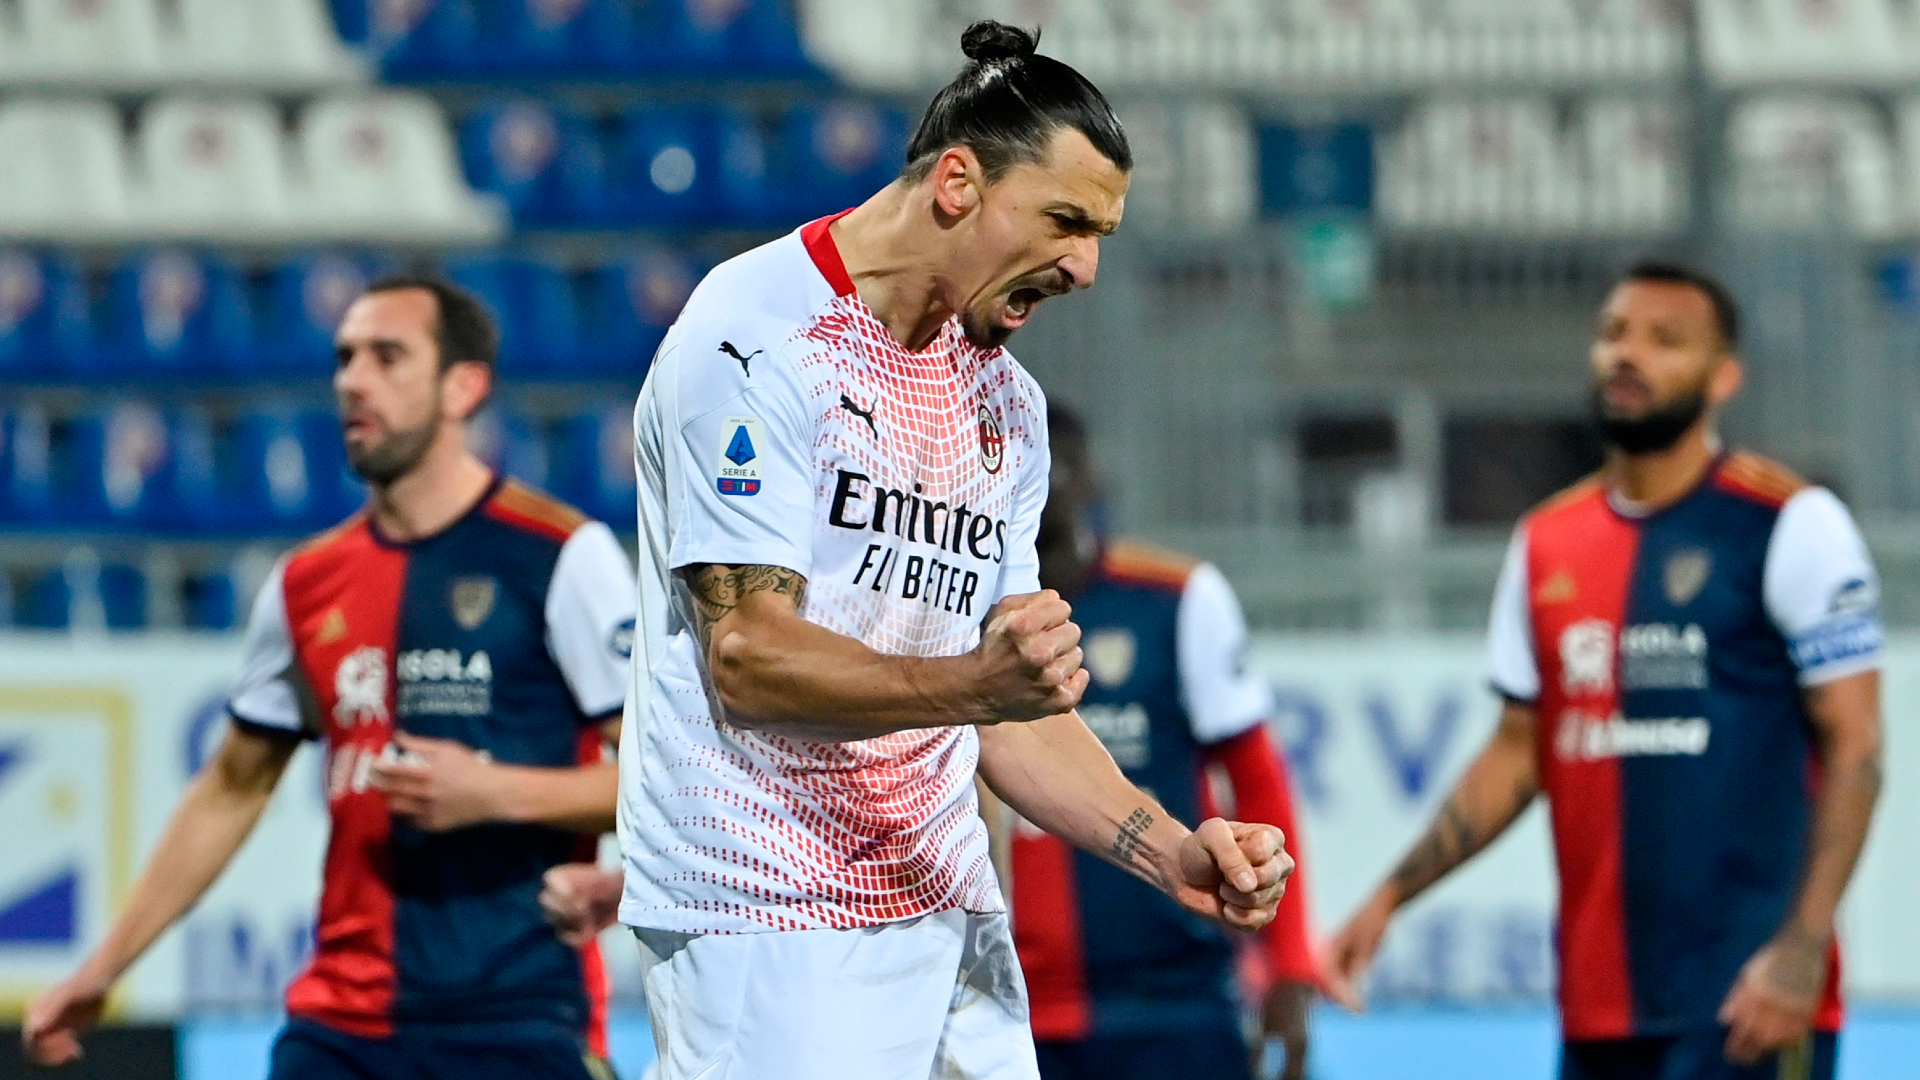 Ibrahimovic exceeded expectations in Milan win – Pioli